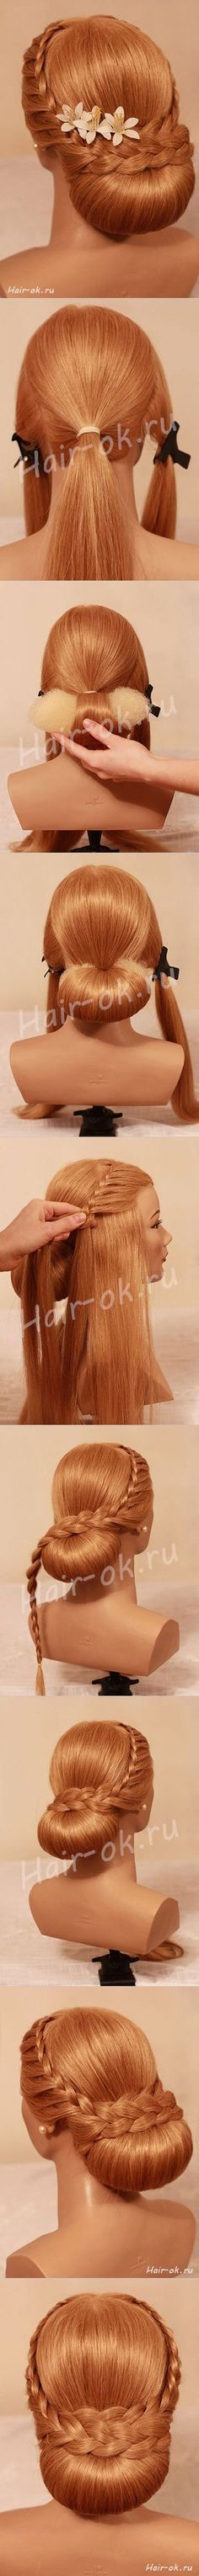 Braided Hair Tutorial and beautiful hair color Braided Bun Hairstyles, Up Hairstyles, Wedding Hairstyles, Hairstyle Braid, Braided Updo, Braid Hair, Low Updo, Hair Twists, Bridesmaid Hair